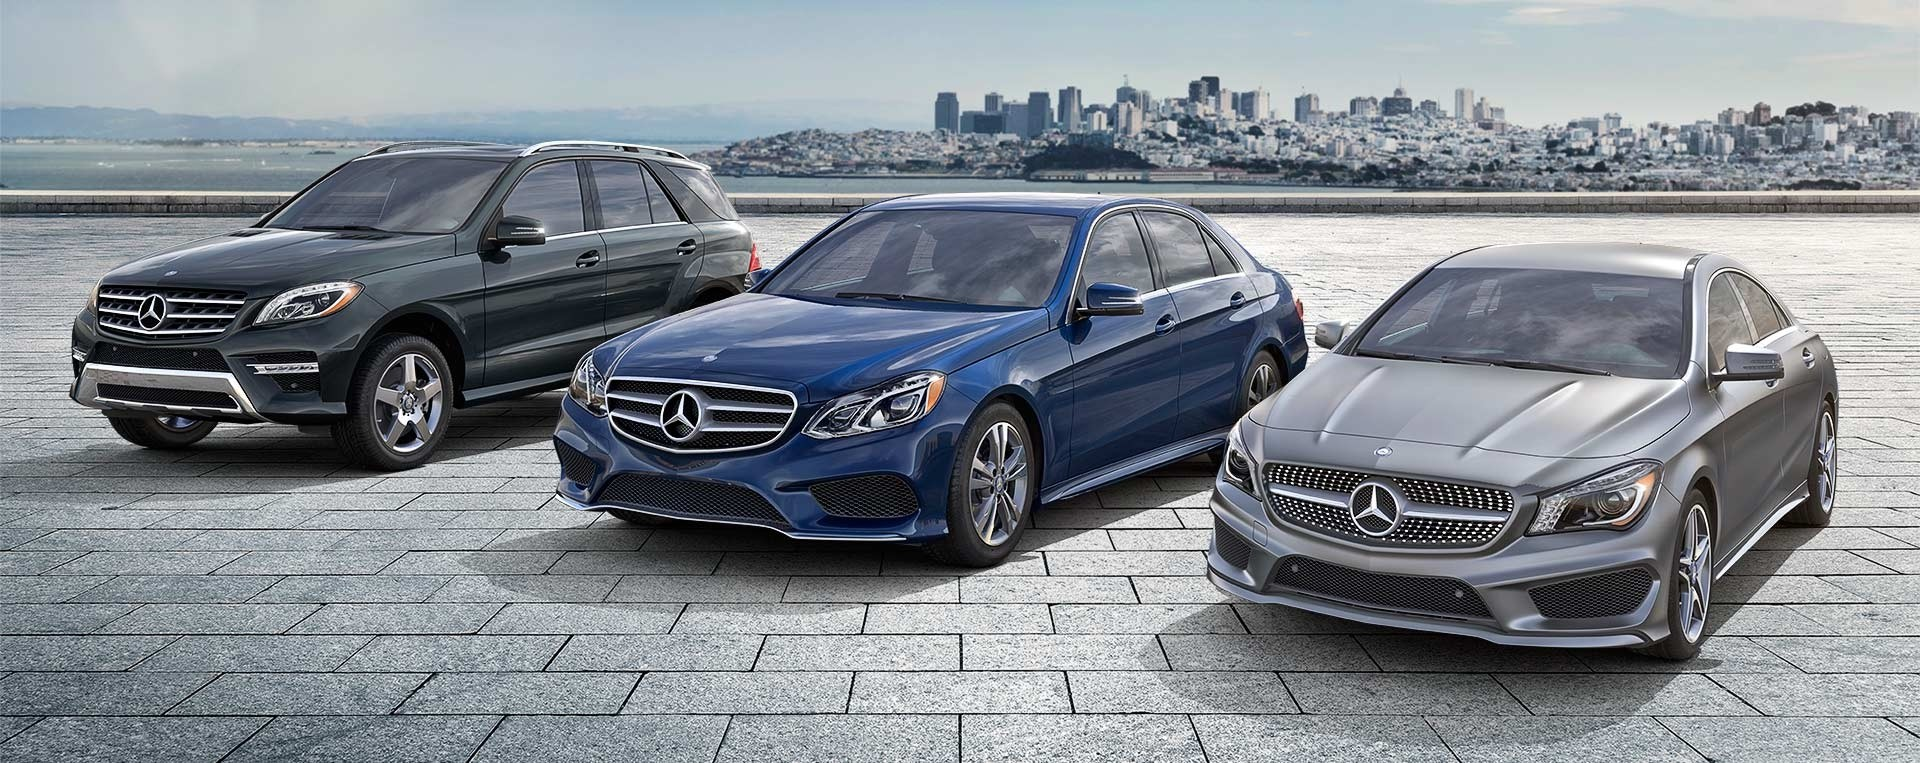 Mercedes benz certified pre owned program vs audi for Mercedes benz rockville centre service